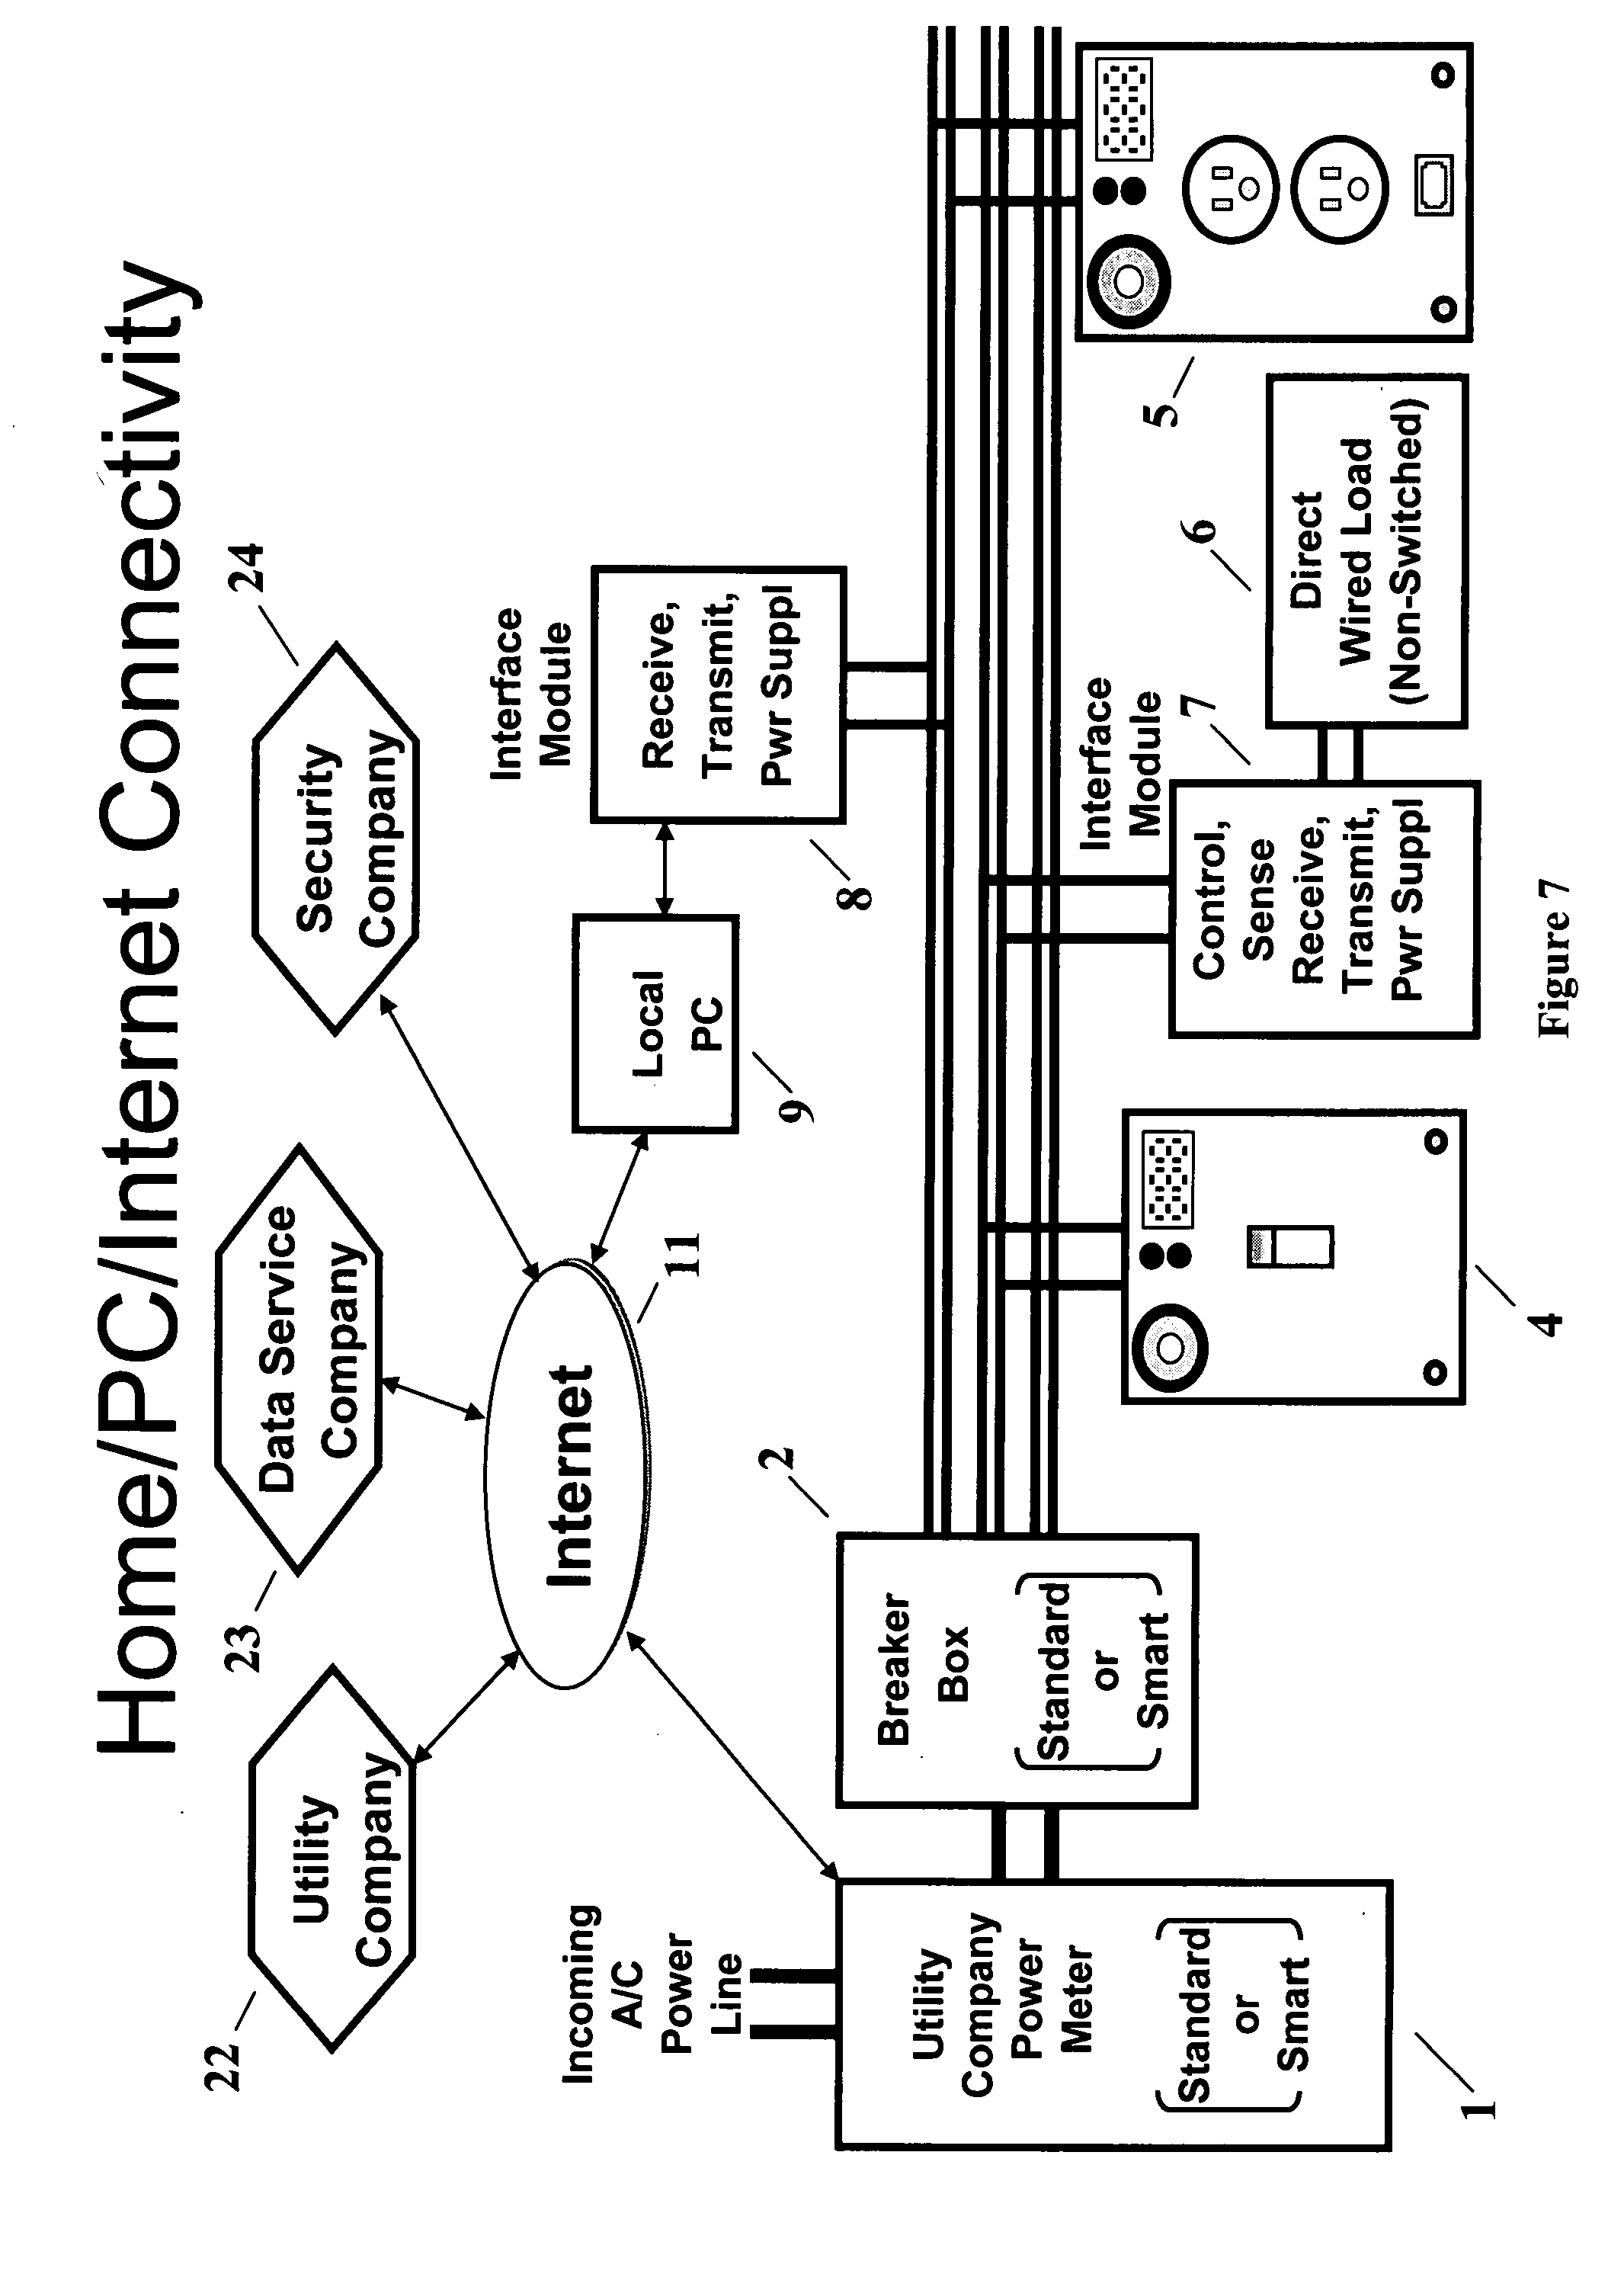 Whirlpool Tachometer Wiring Diagram besides Clarion Wiring Diagram User Manuals yogabreezes in addition E Best 4 3inch Foldable Tft Lcd Monitor 17pcs Led Night Vision Car Rearview Backup Camera Assembly as well Pinhole Camera Wire Diagram in addition Audio Mixer Block Diagram Html. on koolertron wiring diagram